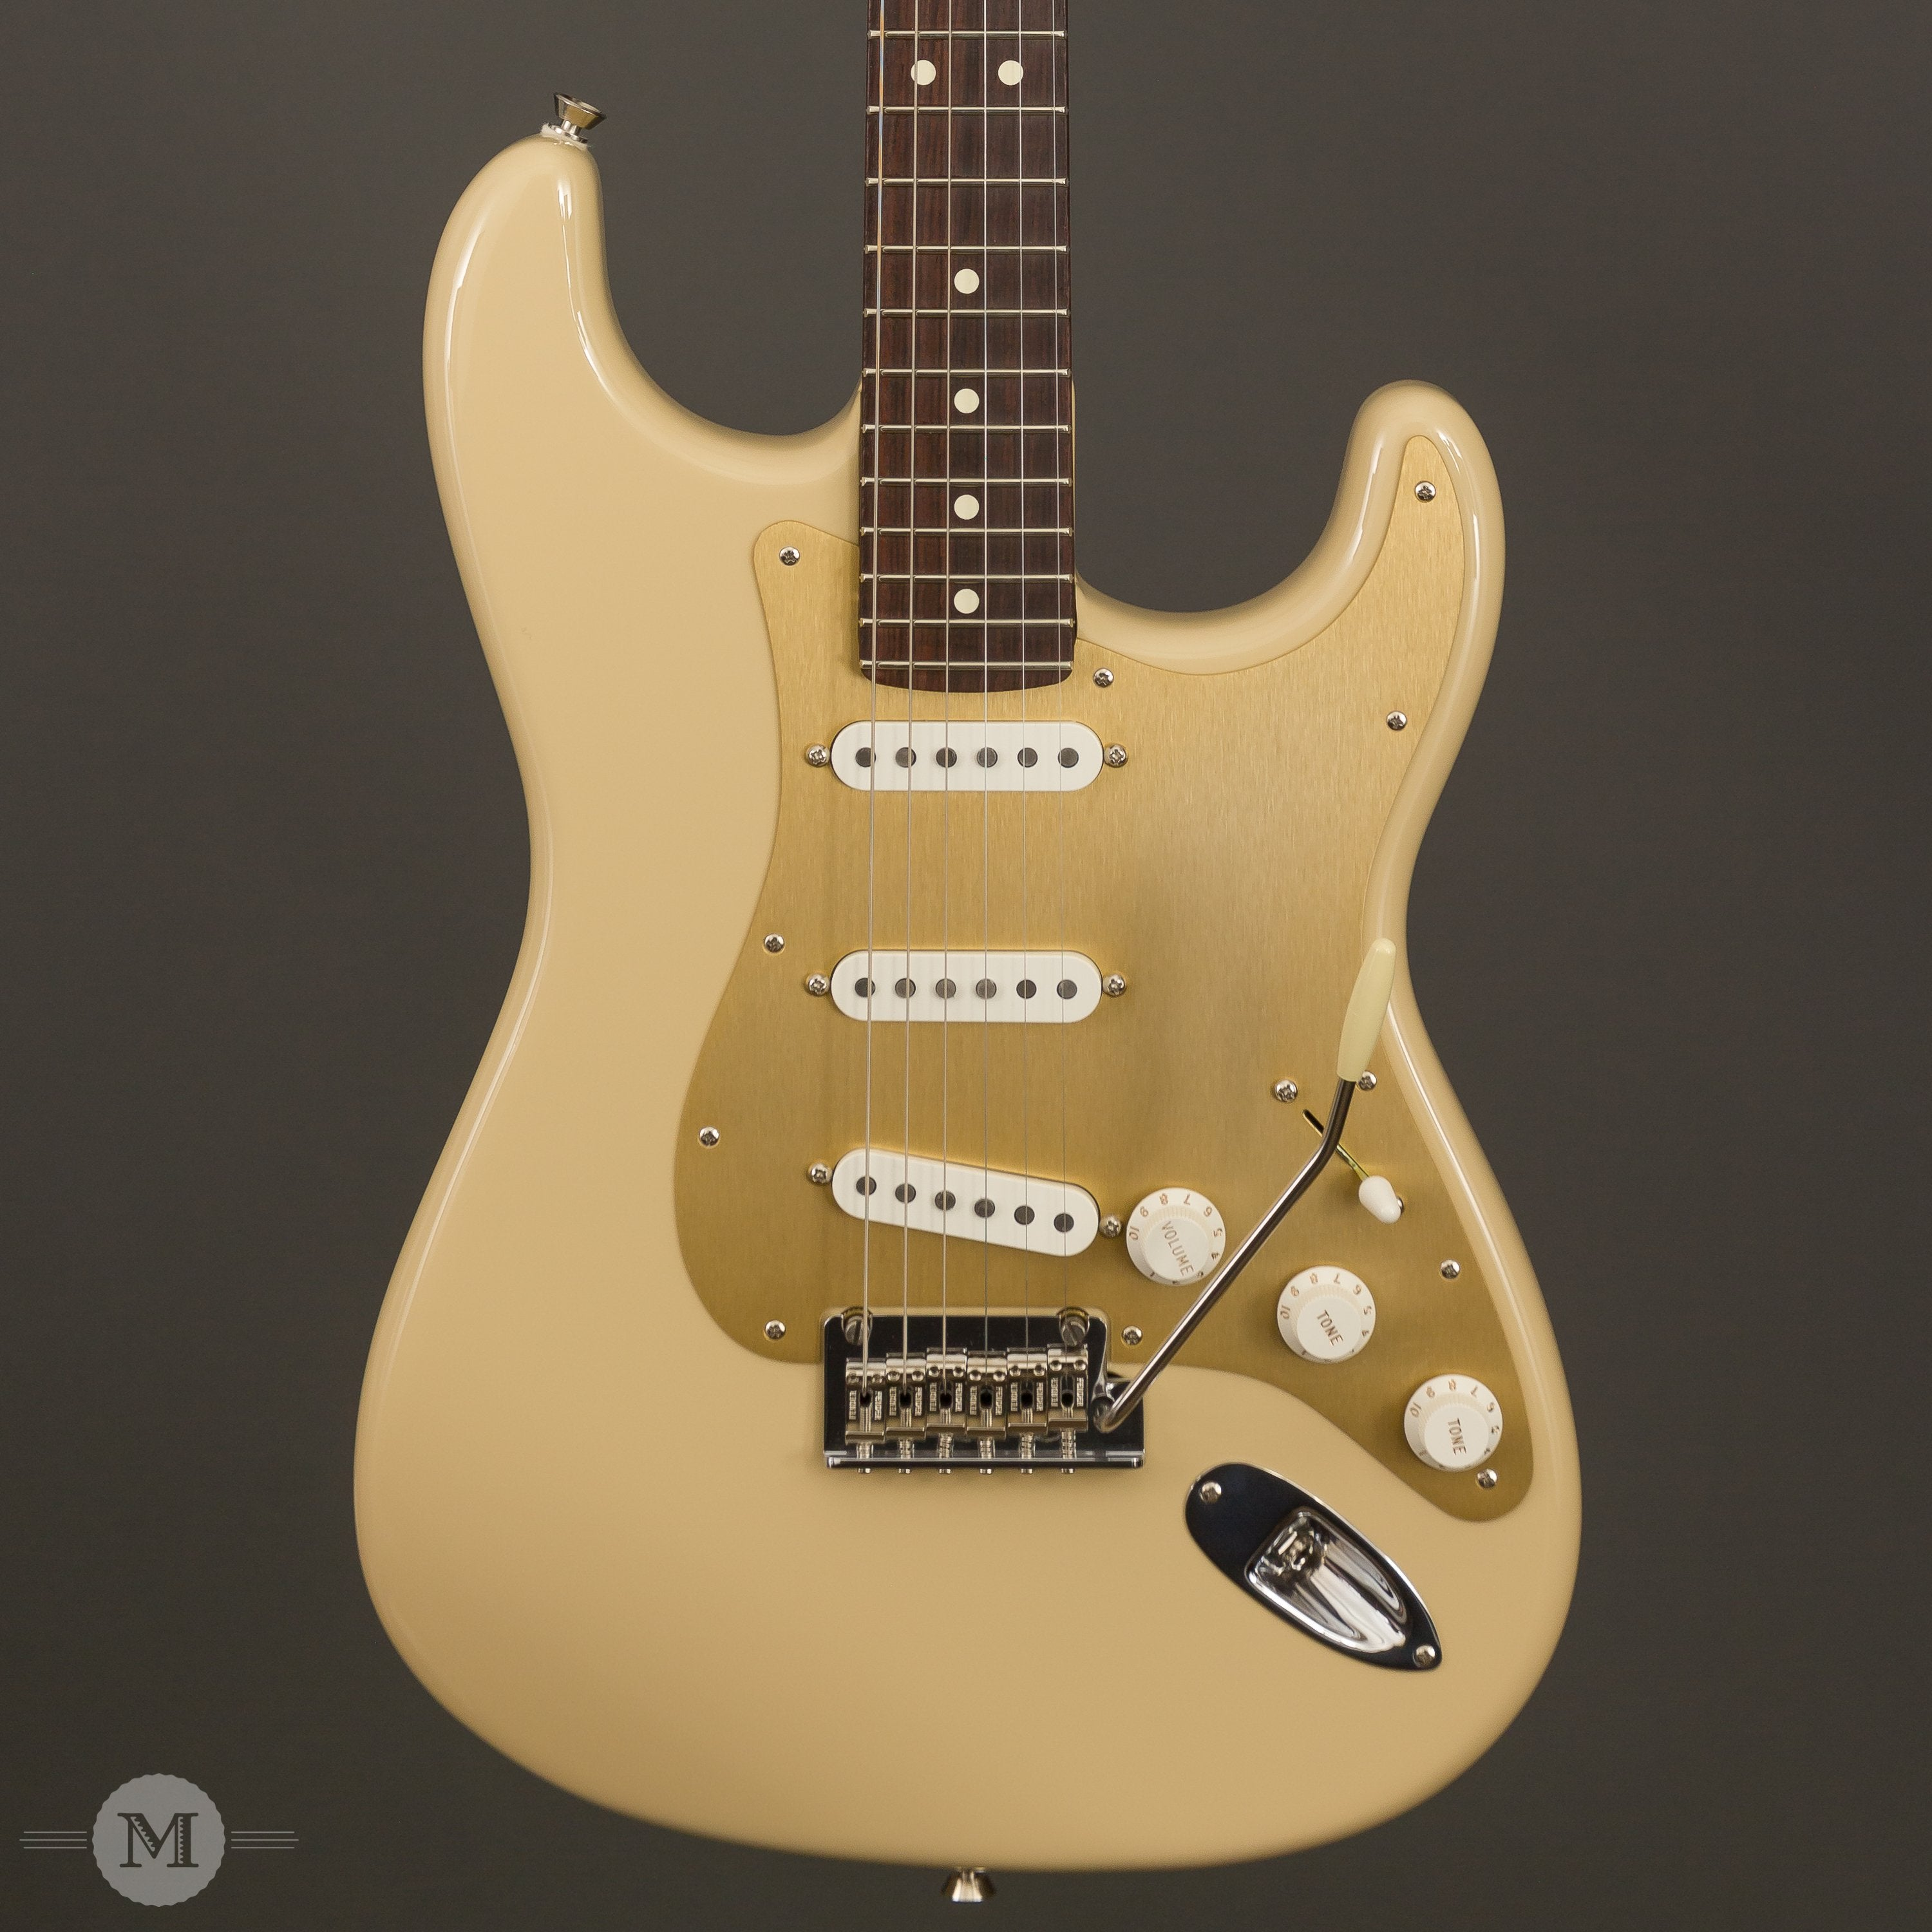 Fender Electric Guitars - American Professional Stratocaster Solid Rosewood Neck Limited Edition - Desert Sand